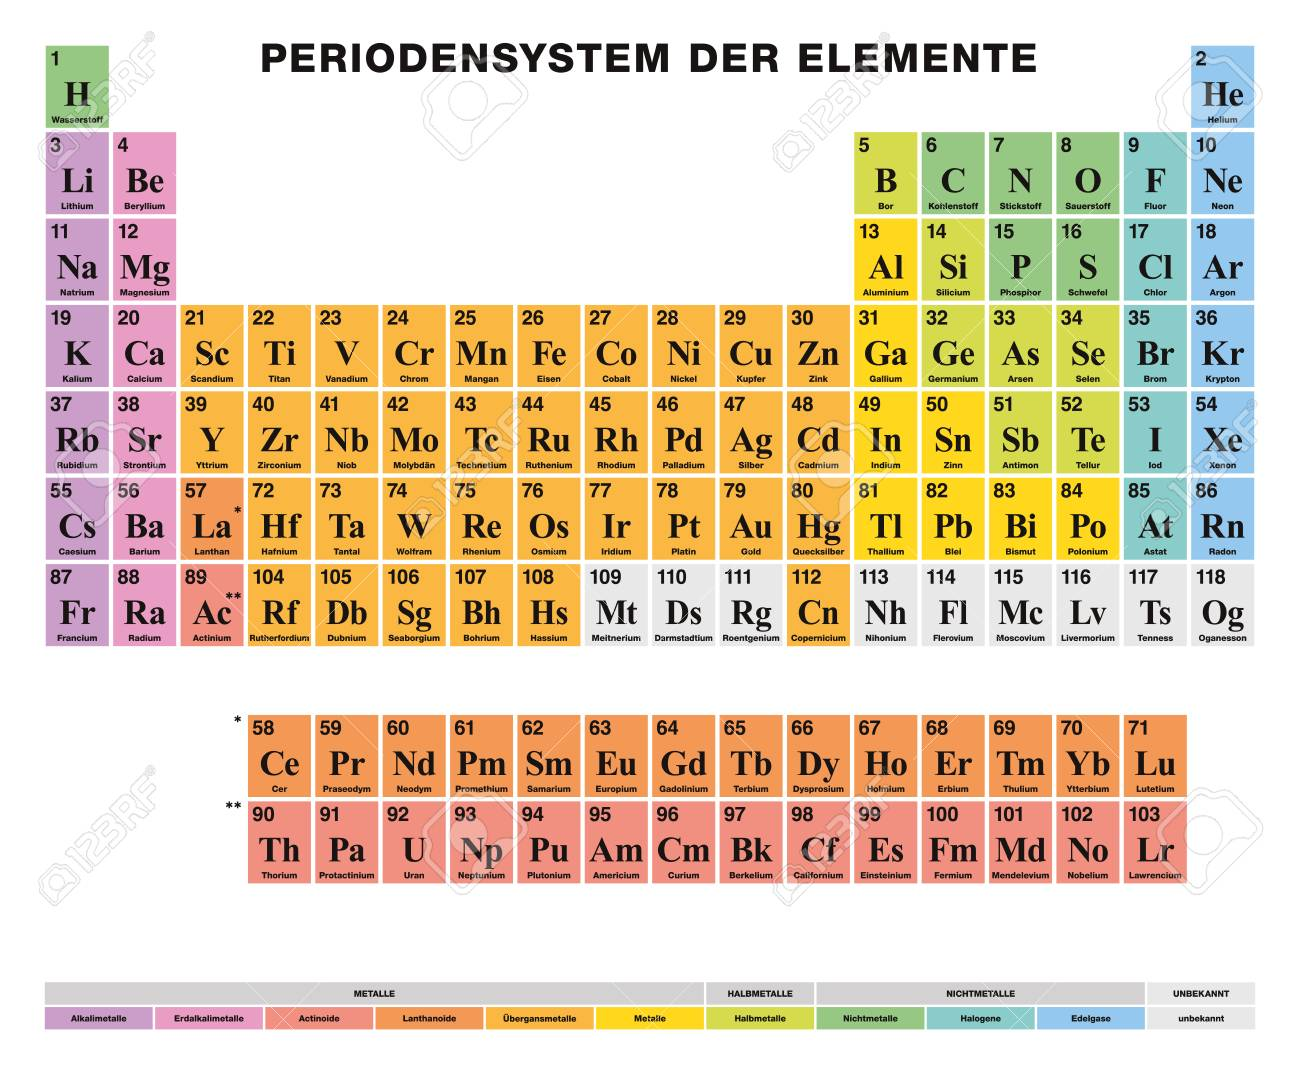 Periodic table of the elements german labeling tabular arrangement periodic table of the elements german labeling tabular arrangement of 118 chemical elements urtaz Images